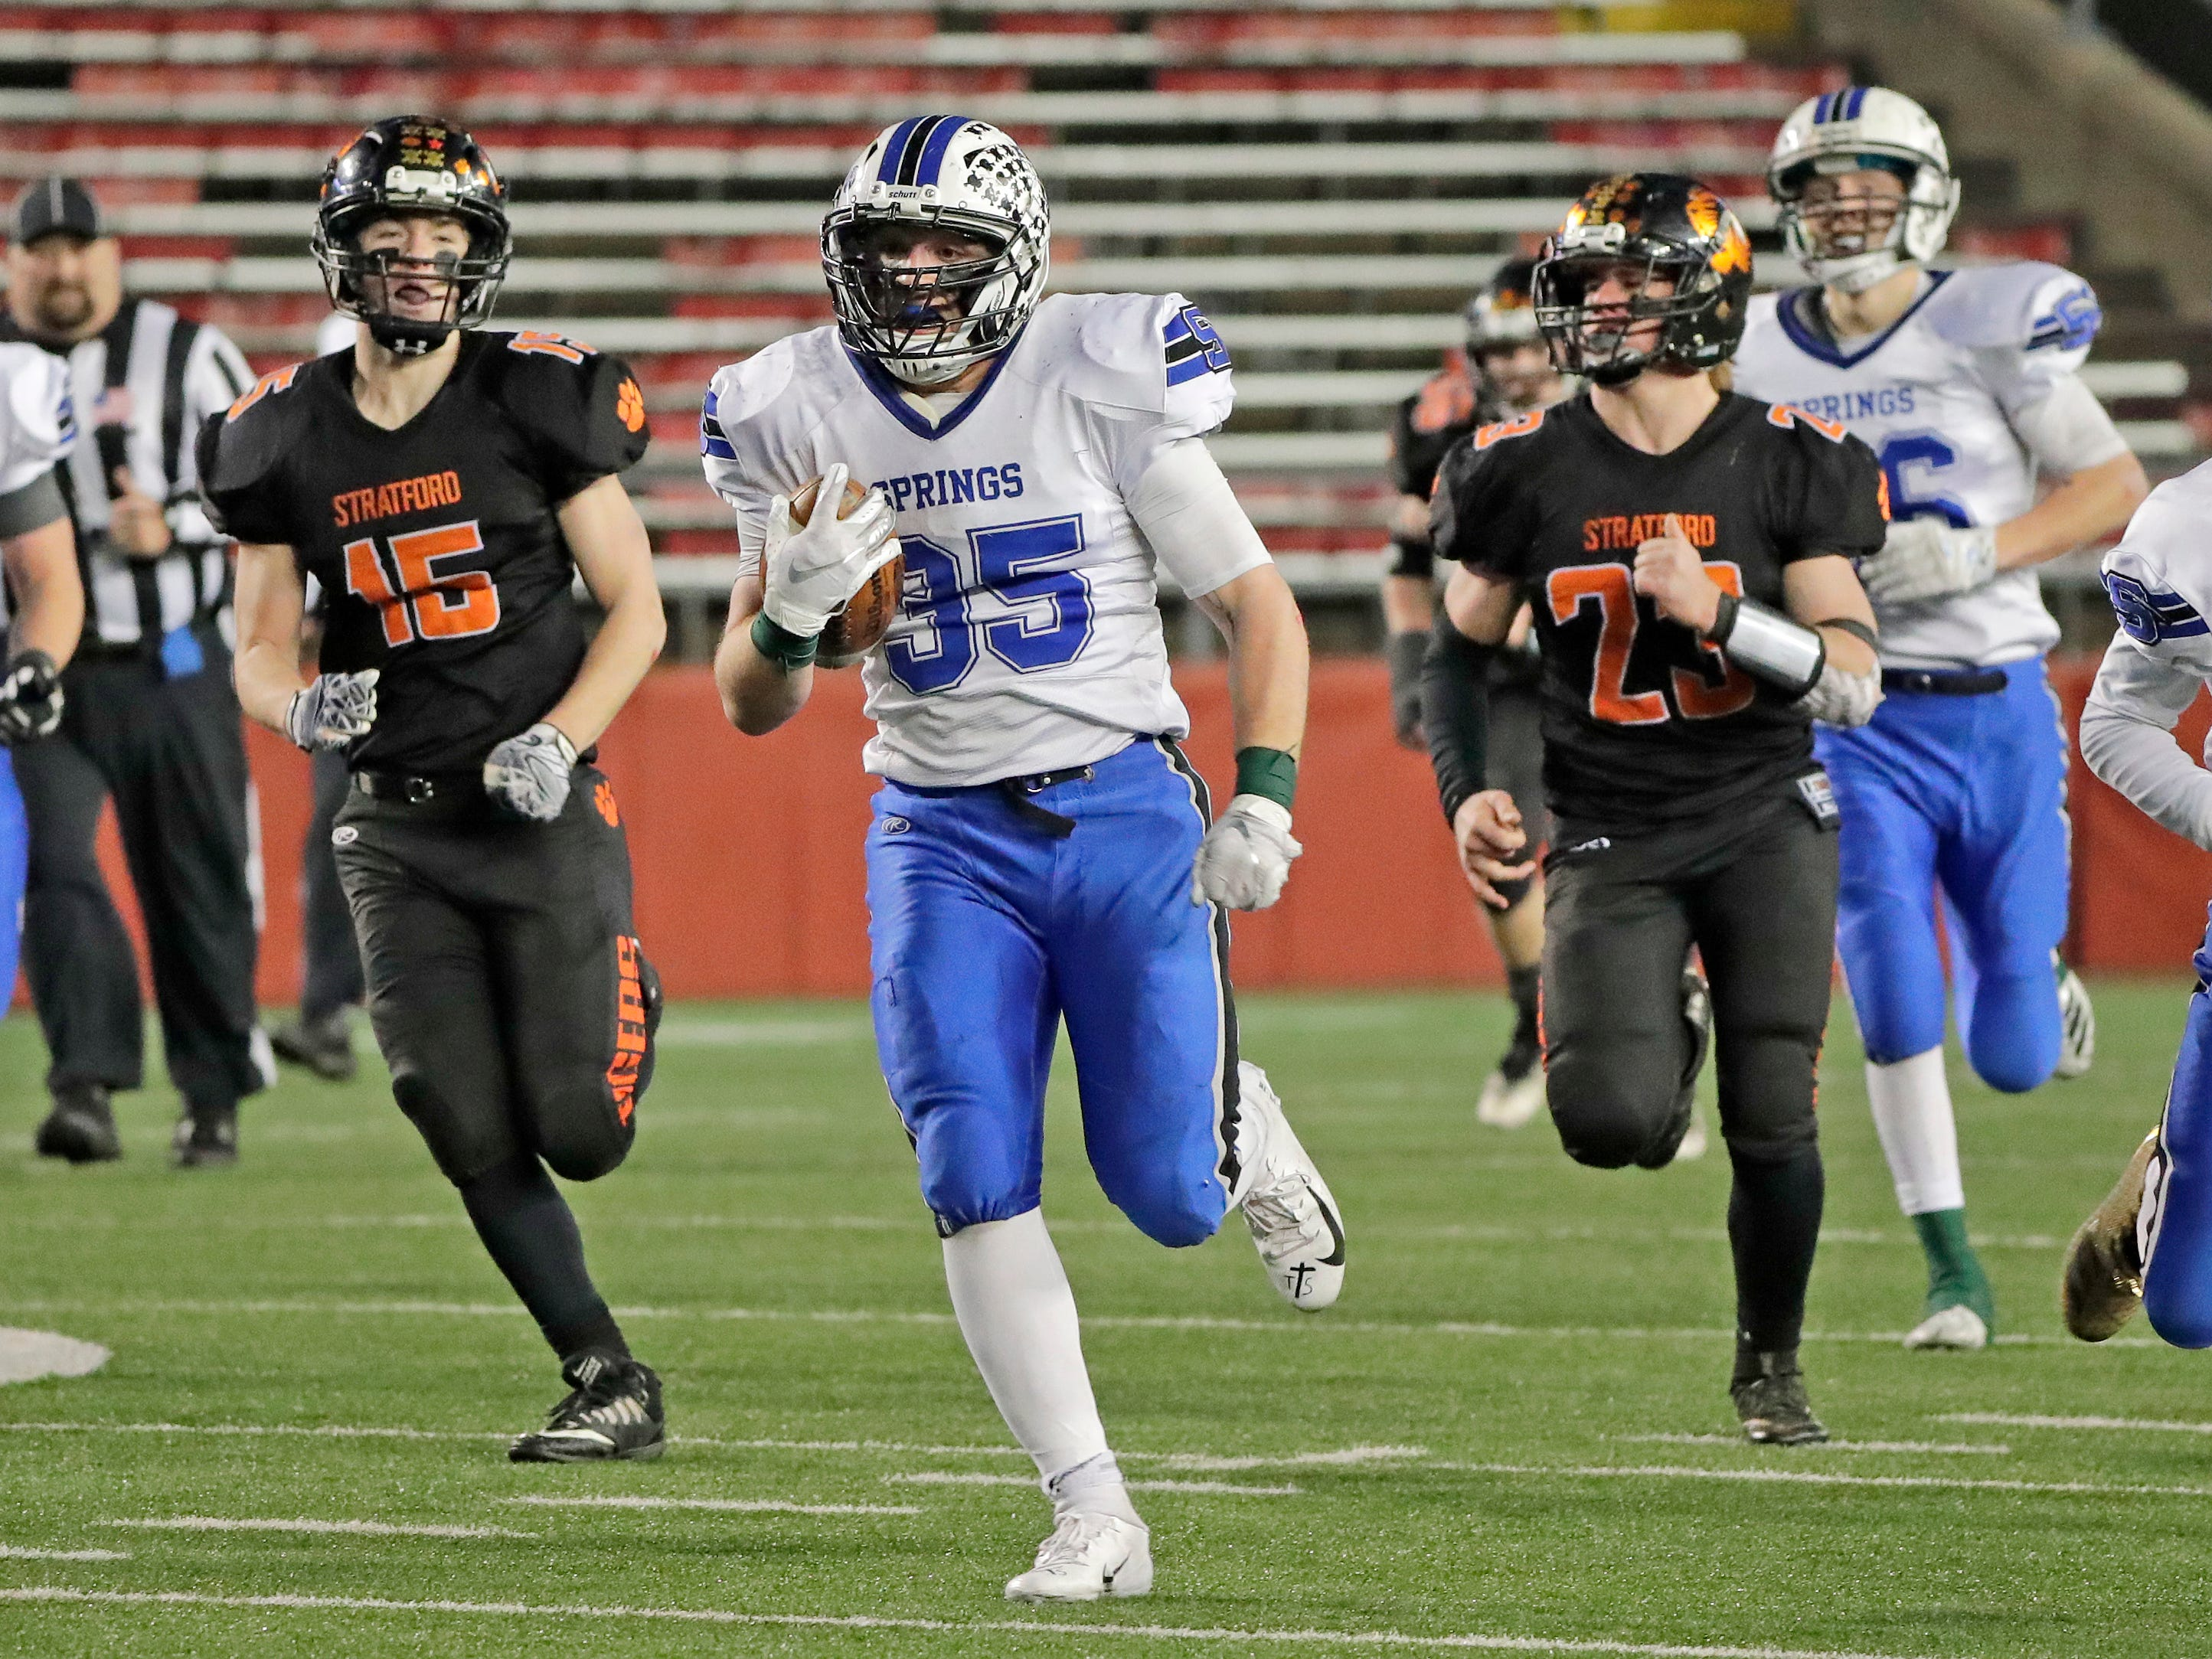 St Mary's Springs Academy's Marcus Orlandoni (35) rushes against Stratford in the WIAA Division 5 championship game at Camp Randall Stadium on Thursday, November 15, 2018 in Madison, Wis.